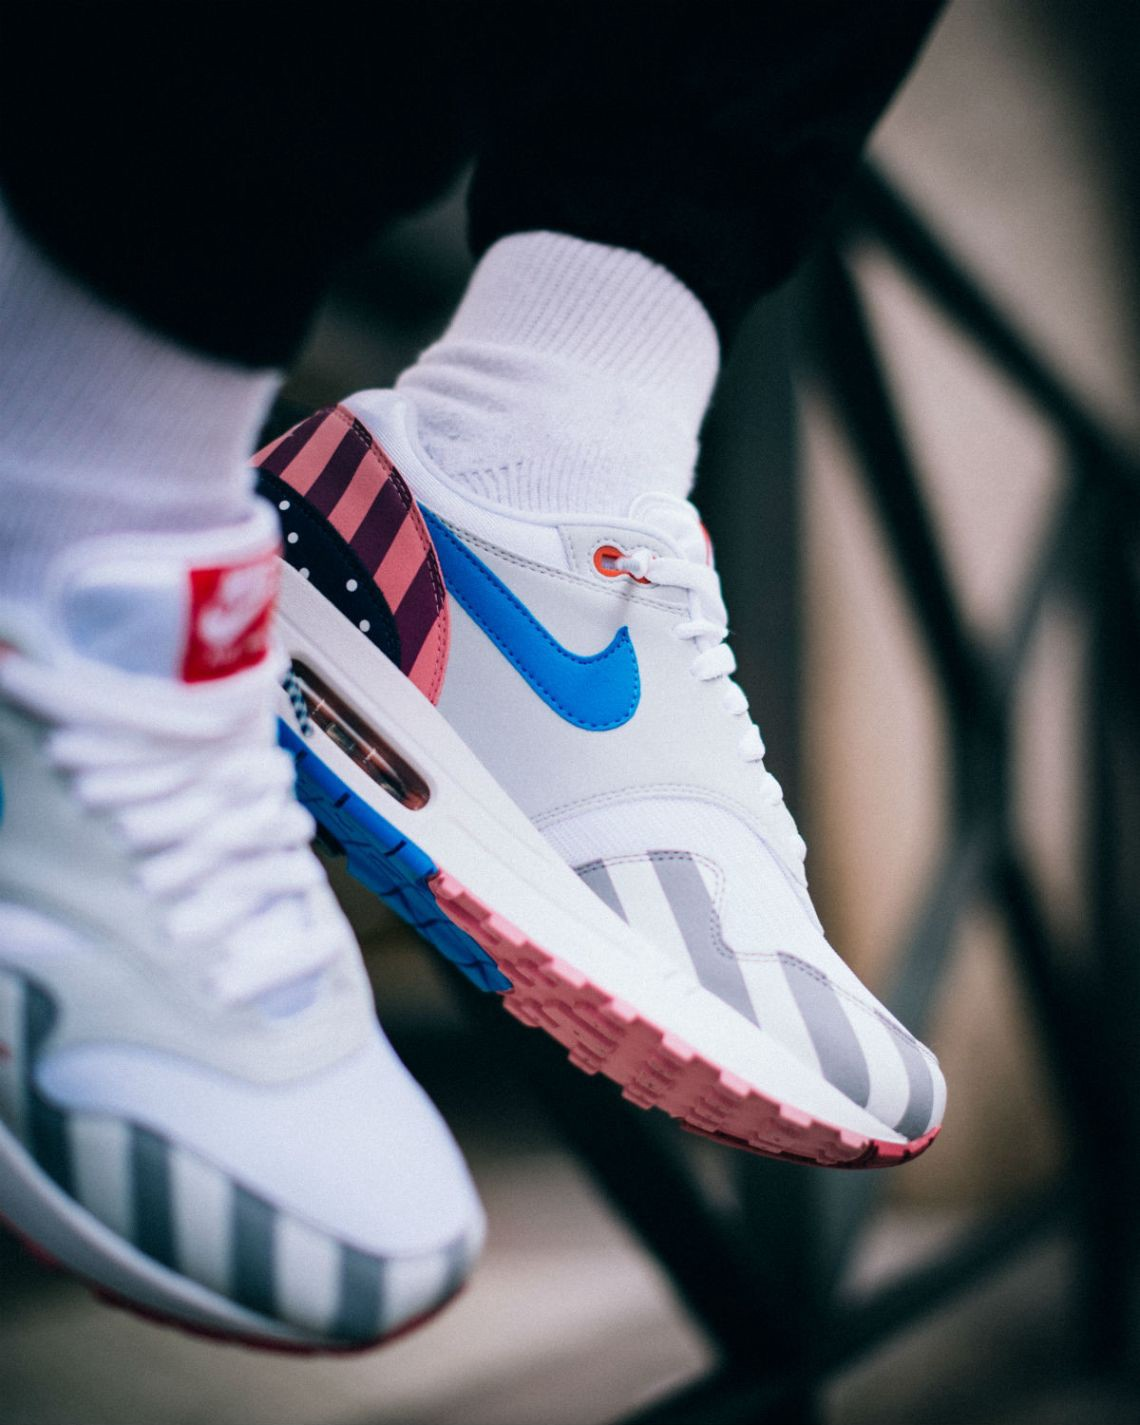 sports shoes c5308 15ab5 History of the Nike Air Max 1 - The Sneakulture - Medium